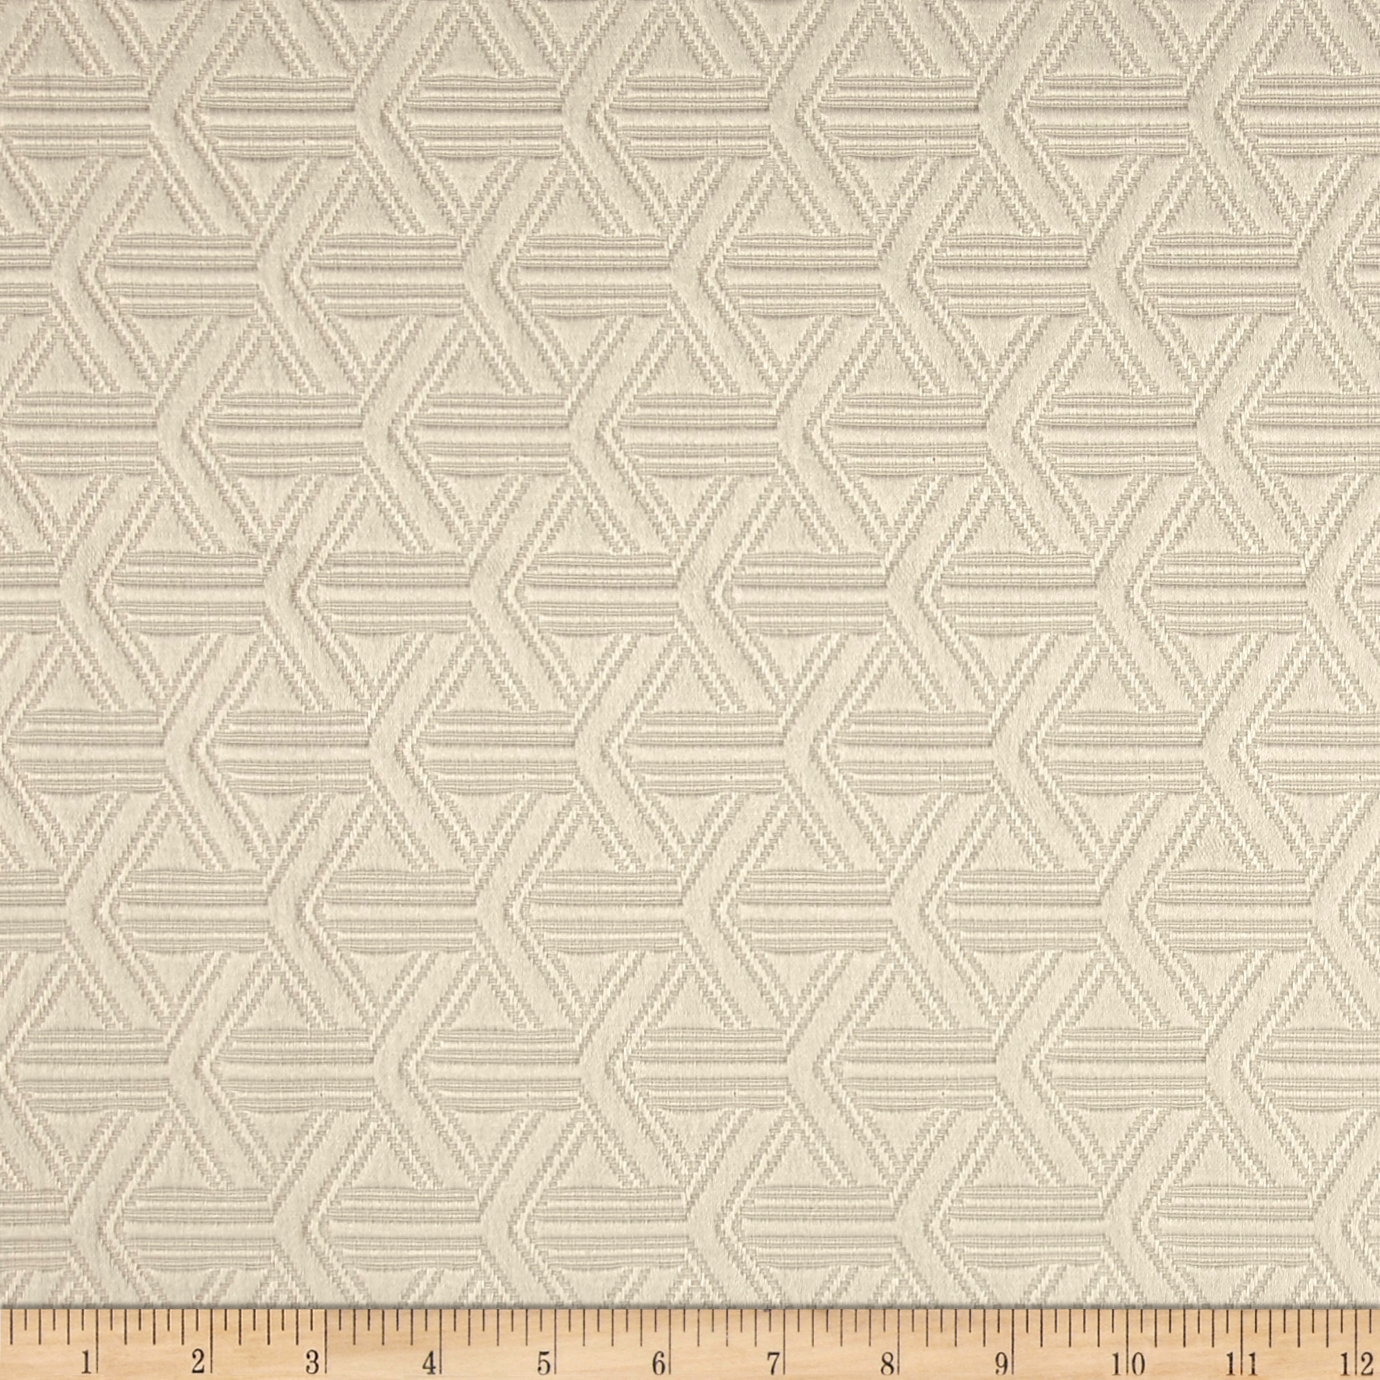 Golding by P/Kaufmann Zelig Jacquard Linen Fabric by Golding in USA